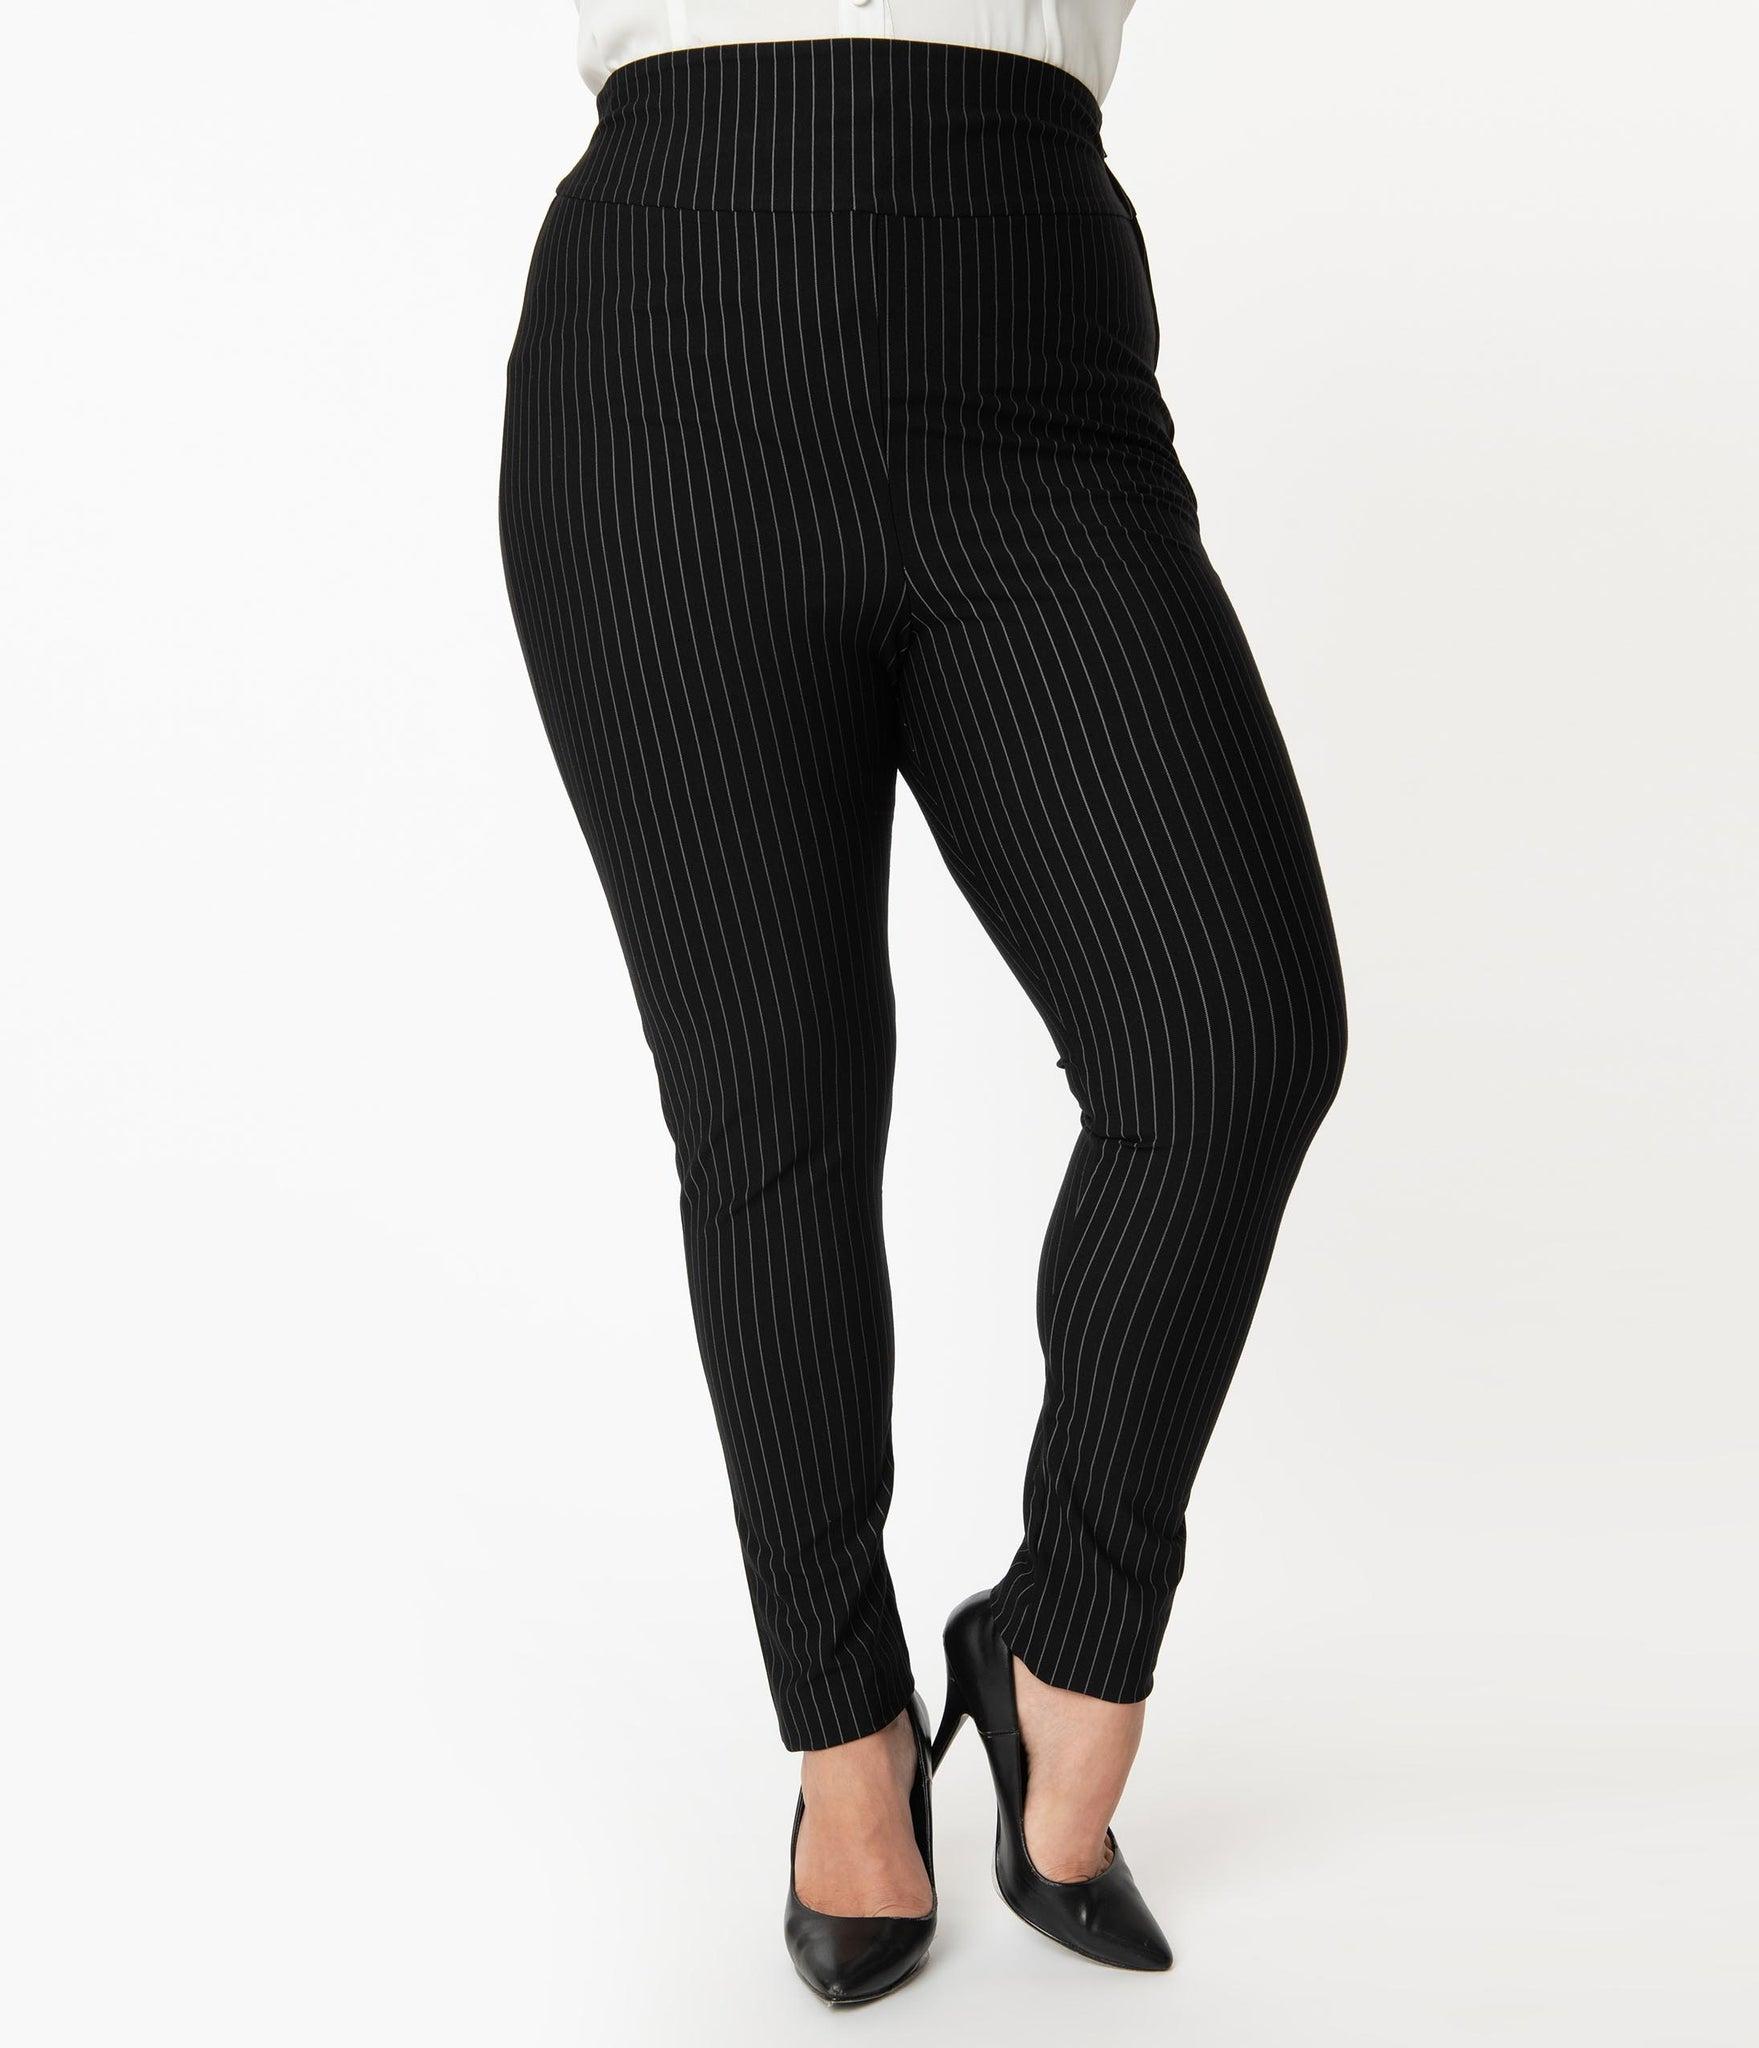 Unique Vintage Plus Size Black & White Pinstripe Rizzo Cigarette Pants